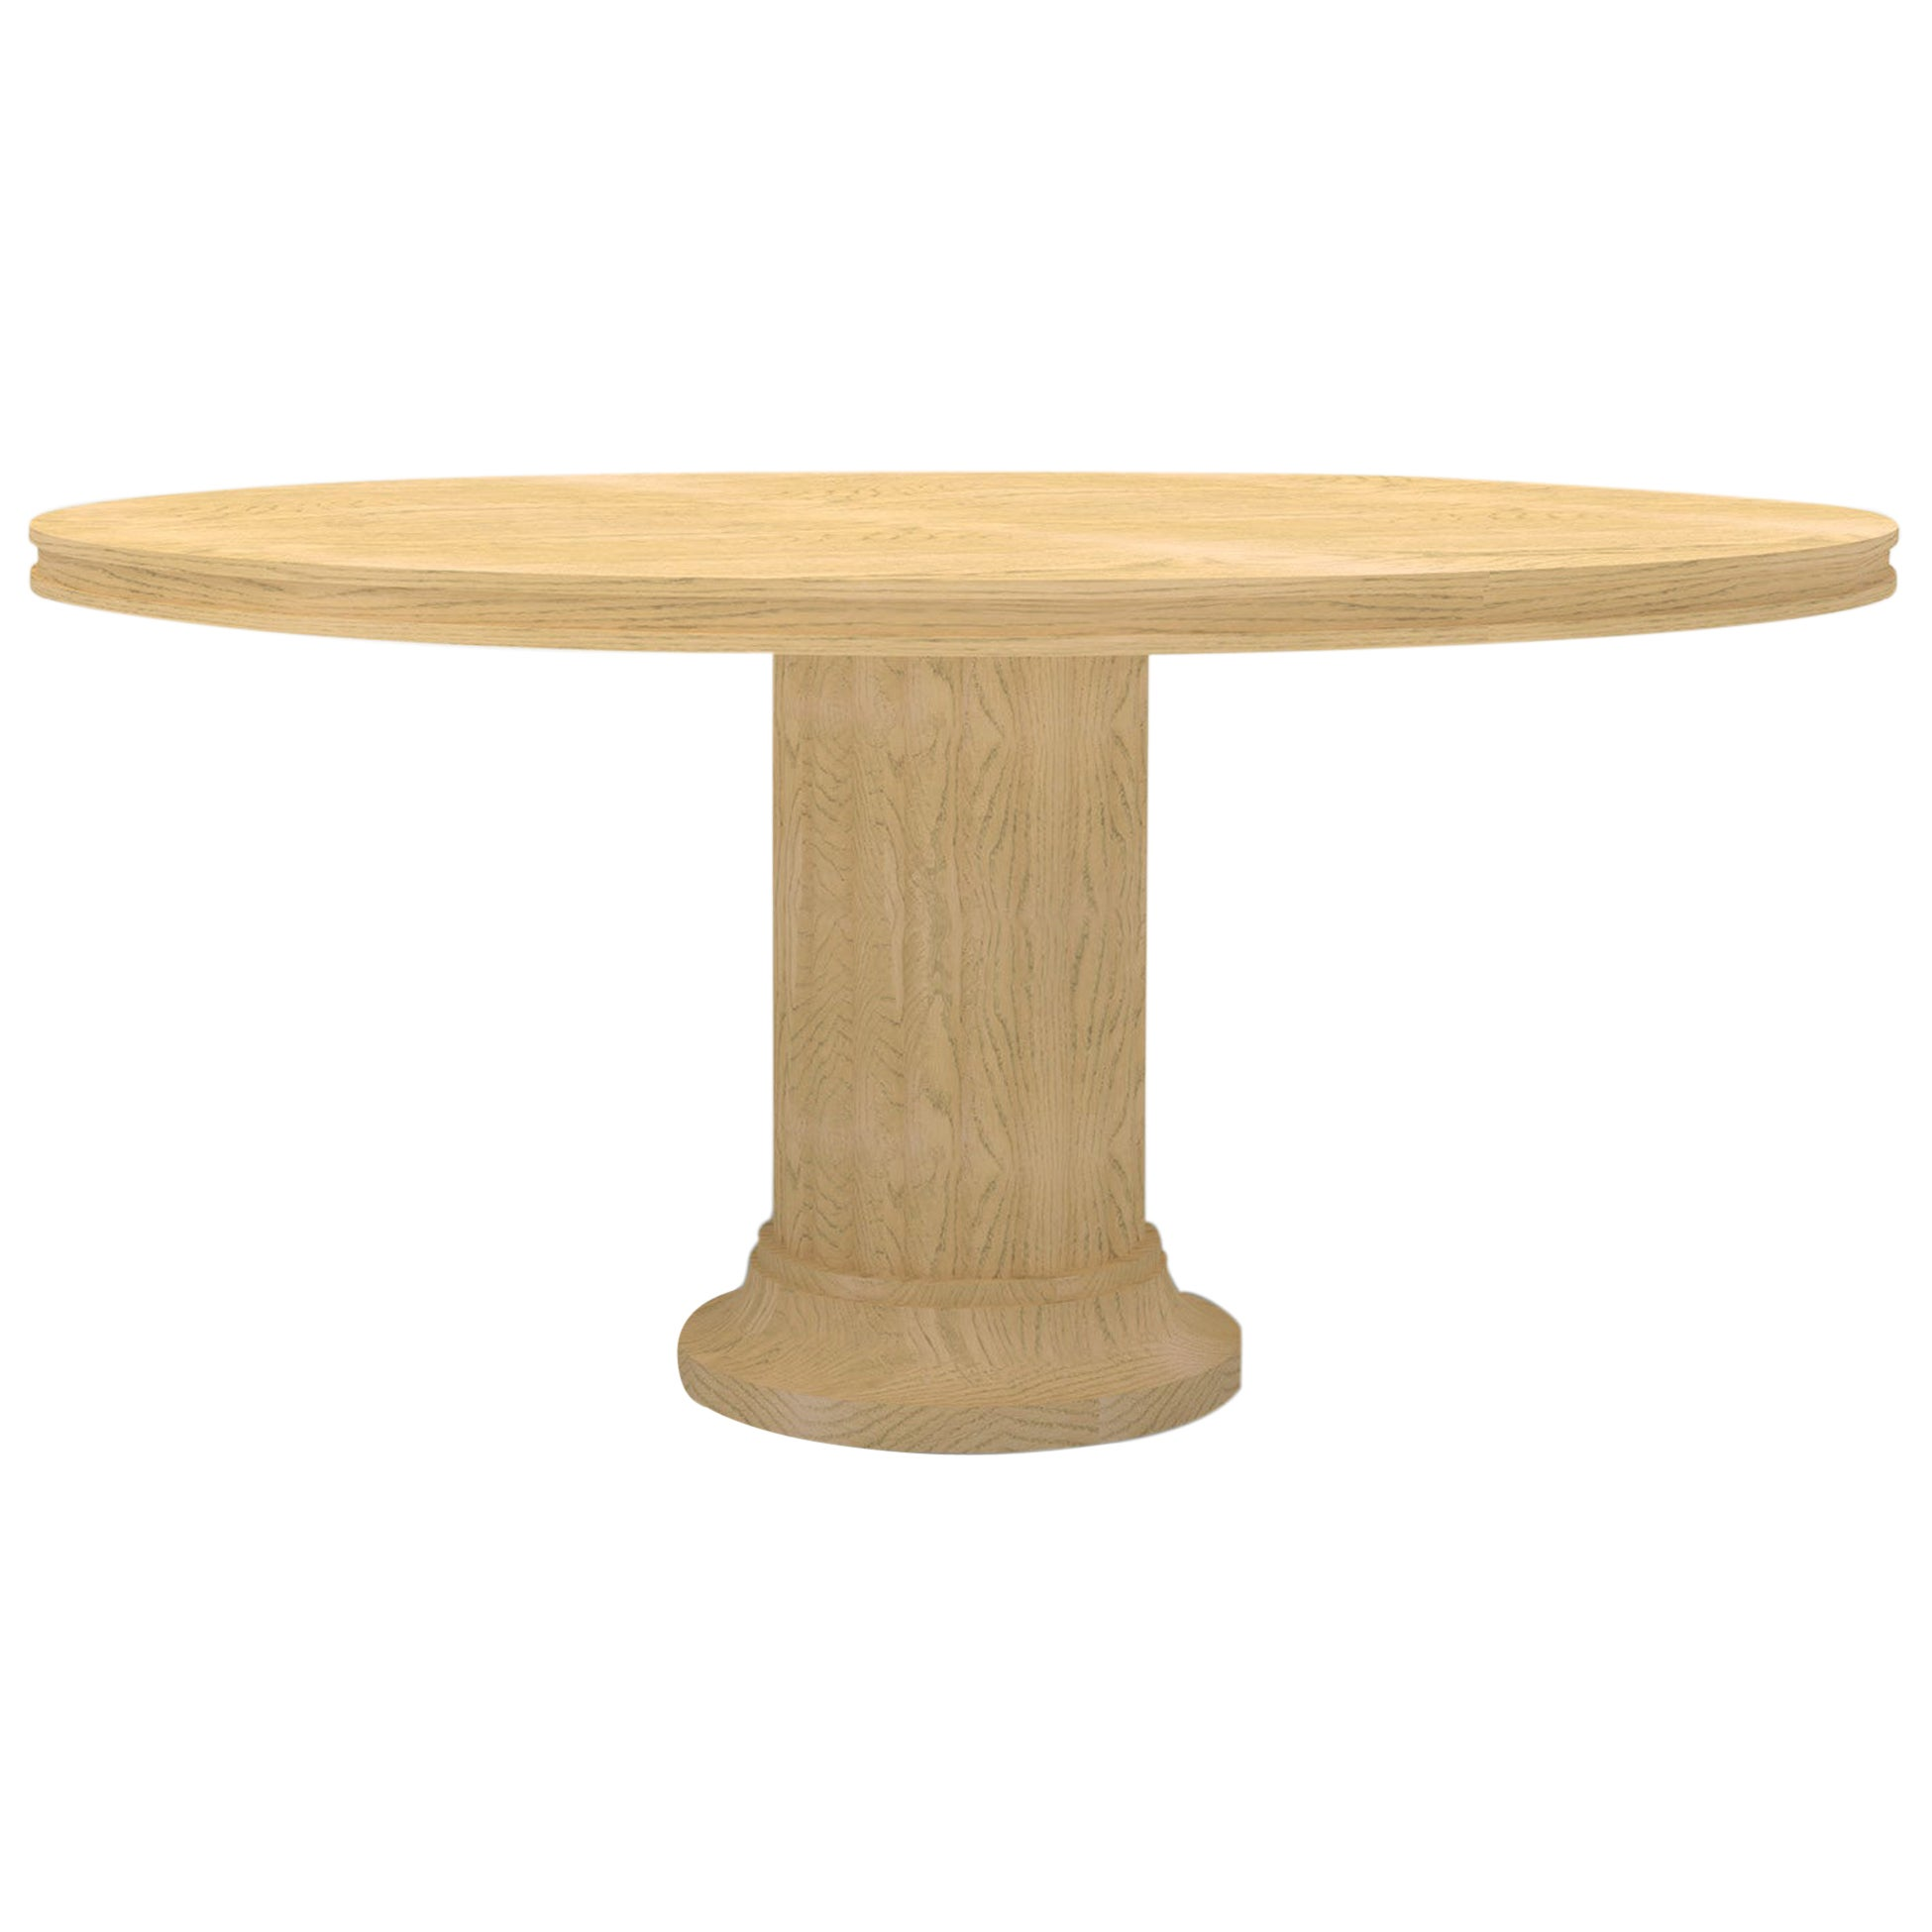 Wood Pedestal Dining Table with Carved Base and Wood Top with Carved Edge